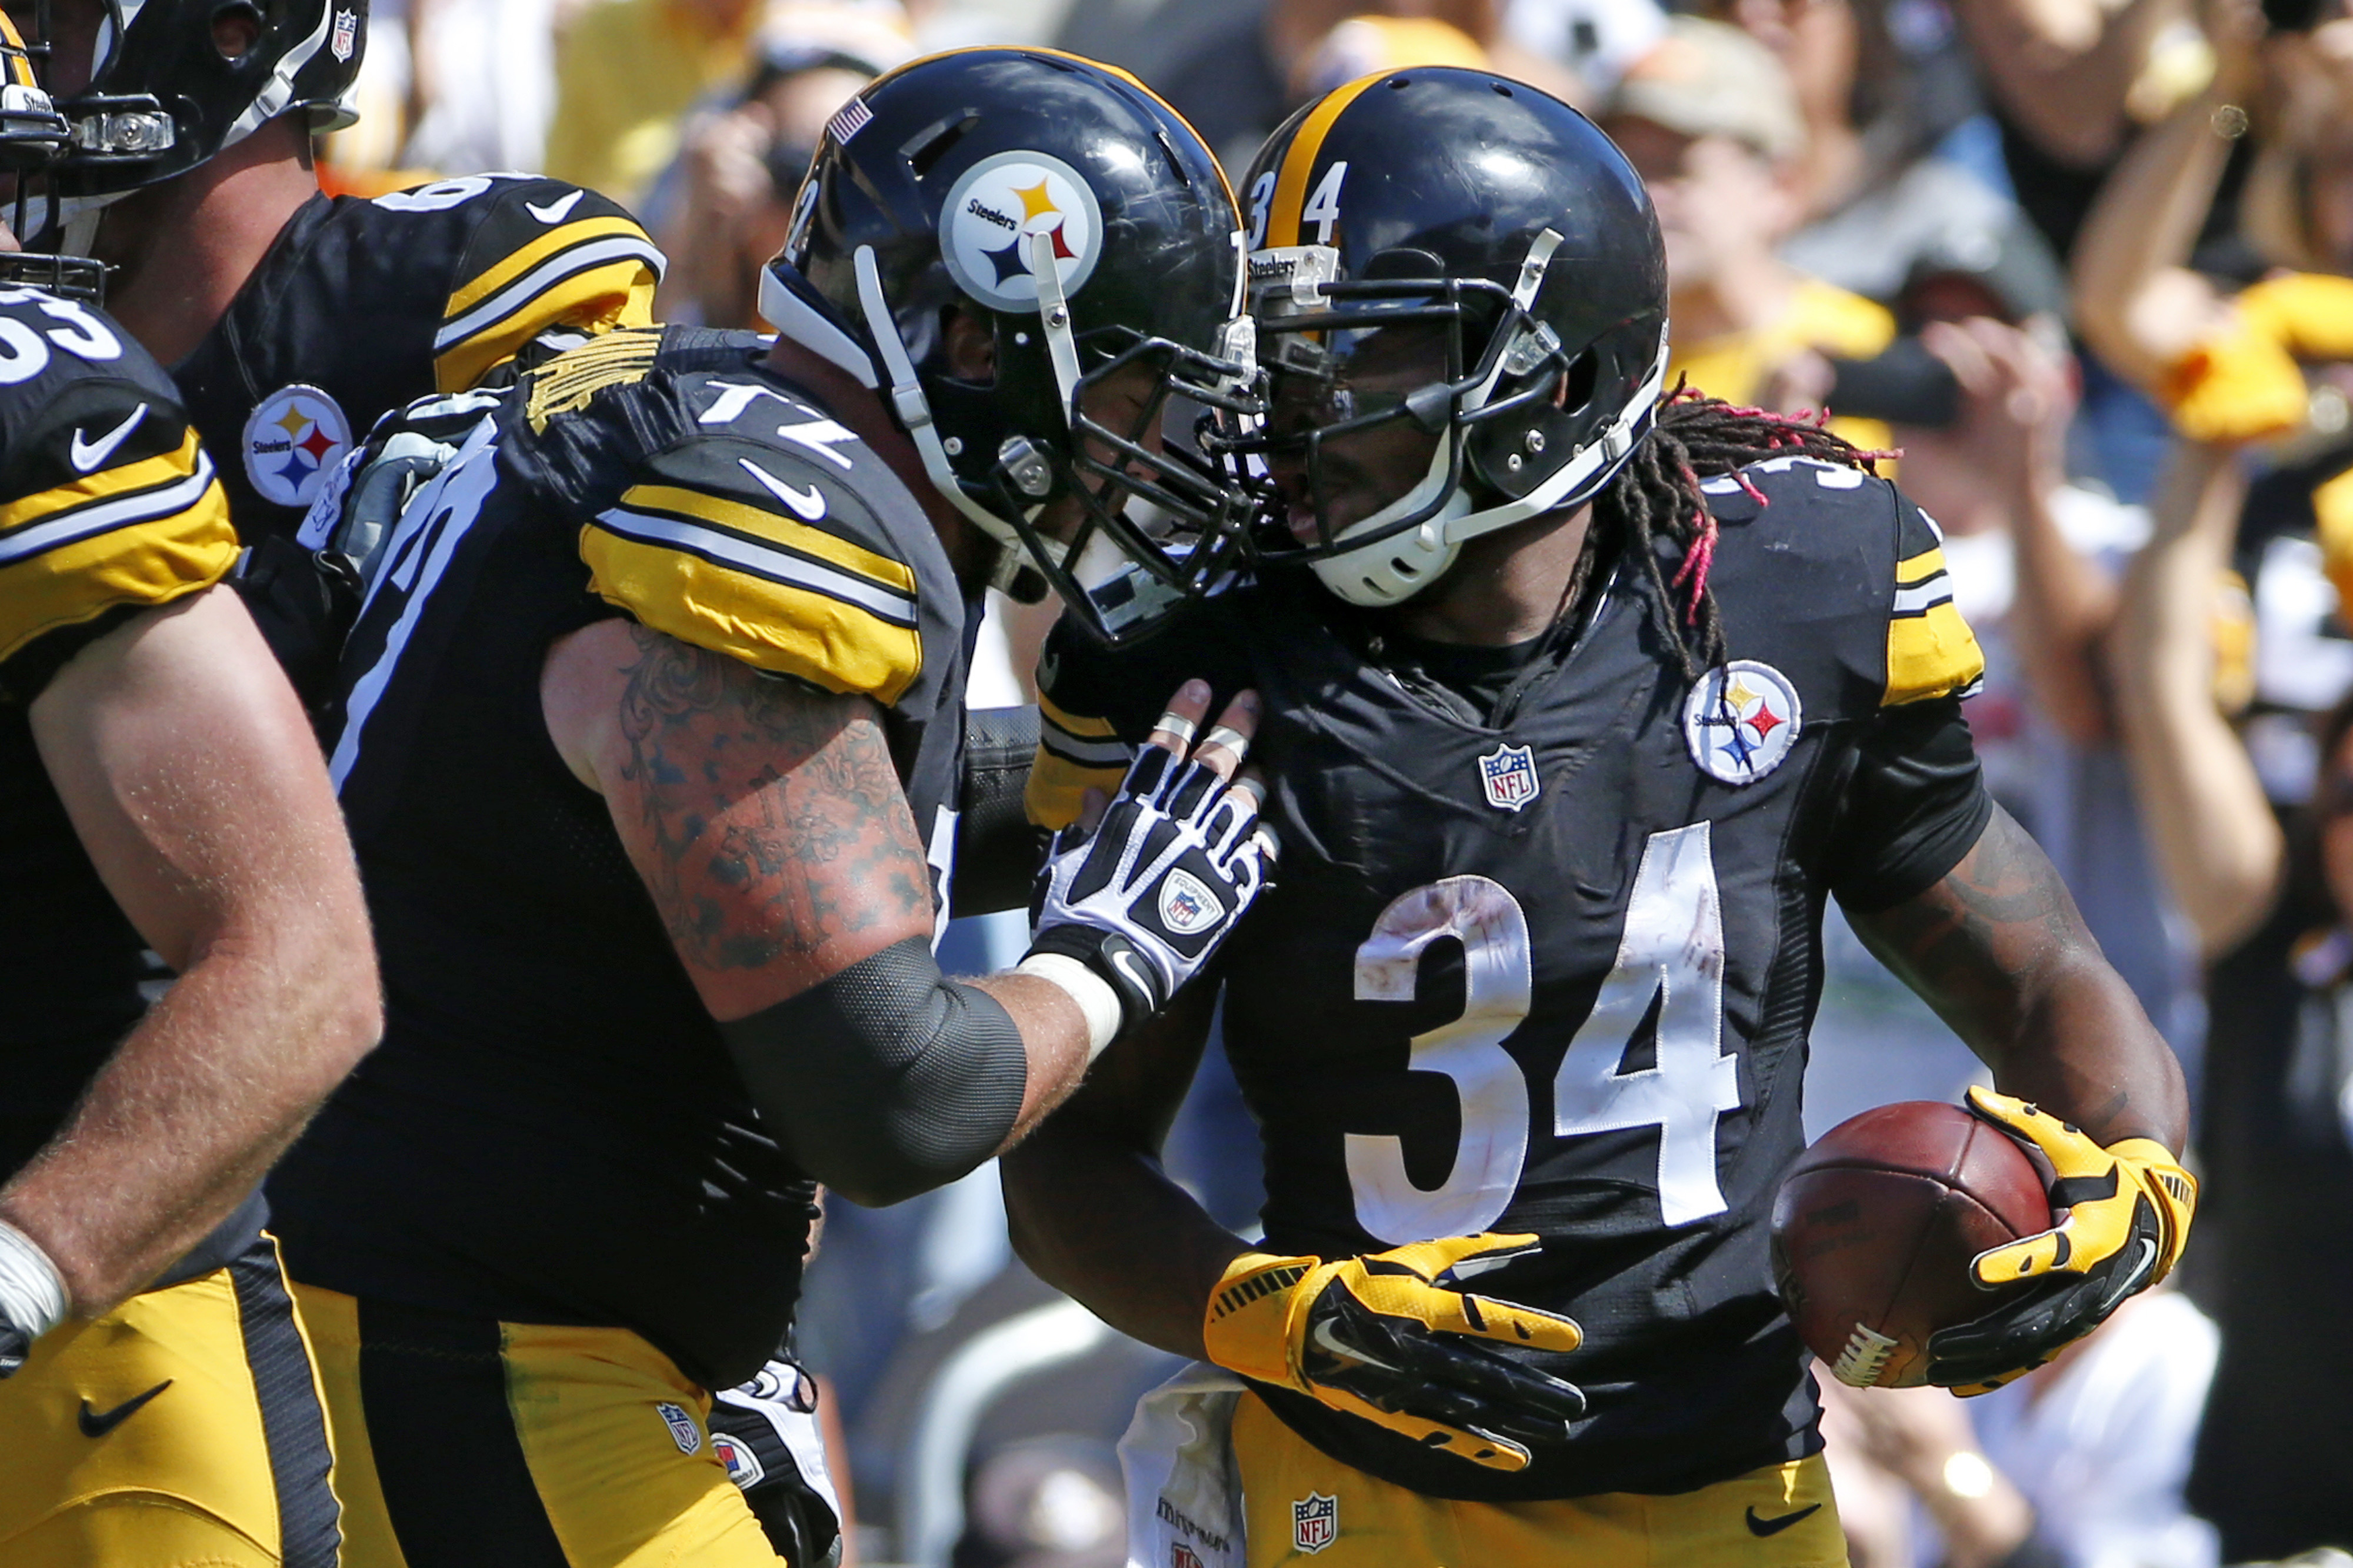 Pittsburgh Steelers running back DeAngelo Williams (34) is greeted by center Cody Wallace (72) after scoring a touchdown in the second quarter of an NFL football game against the San Francisco 49ers, Sunday, Sept. 20, 2015, in Pittsburgh. (AP Photo/Gene J